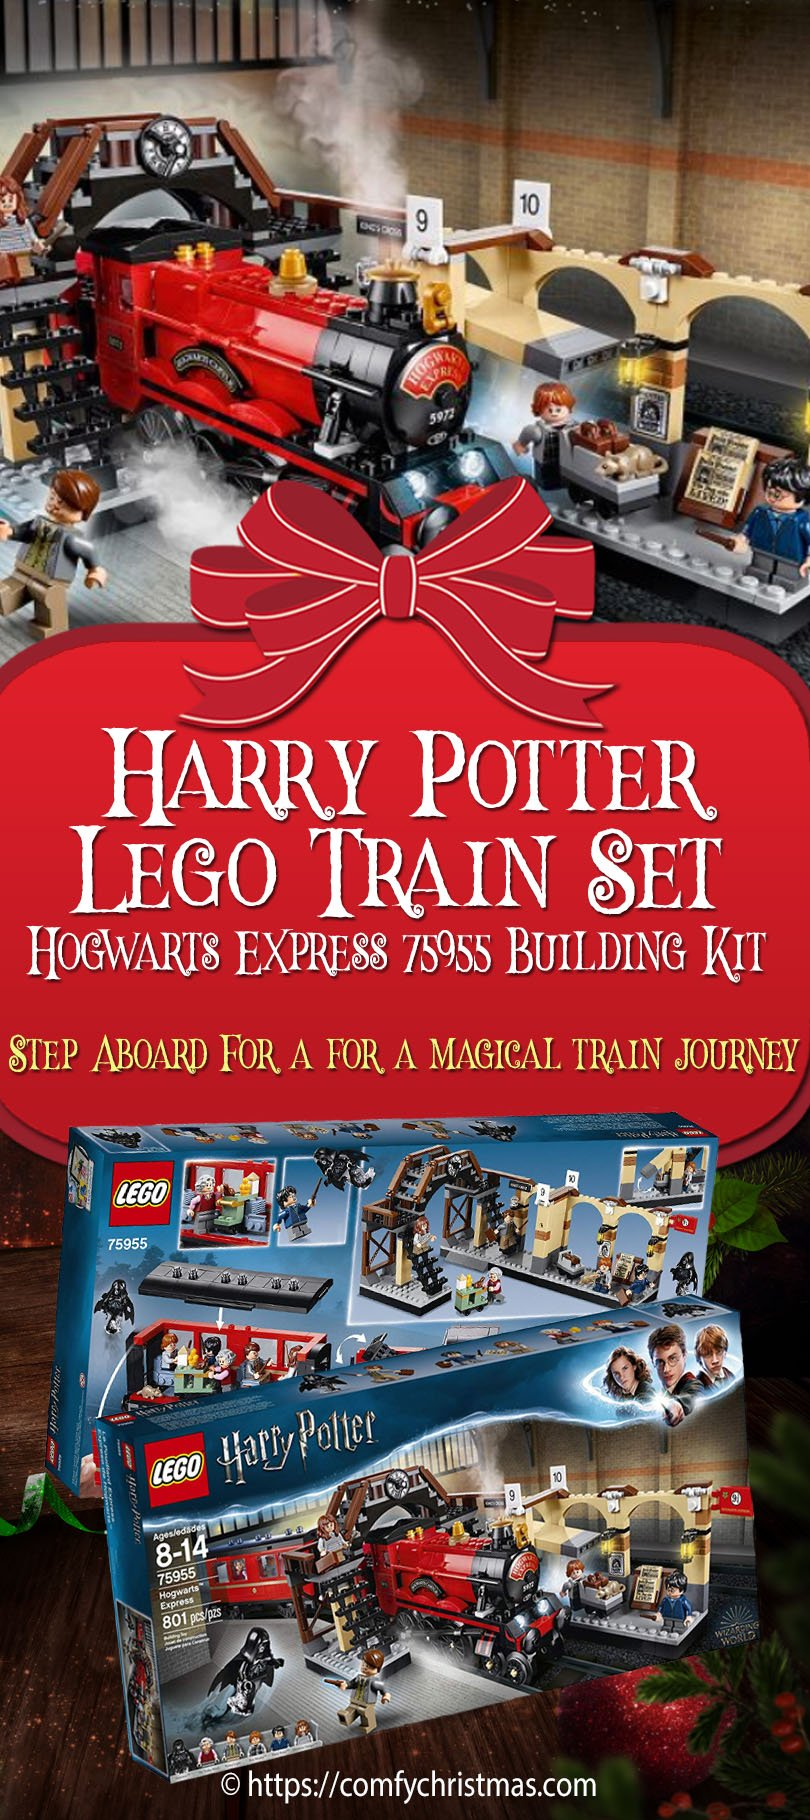 Harry Potter LEGO Train Set